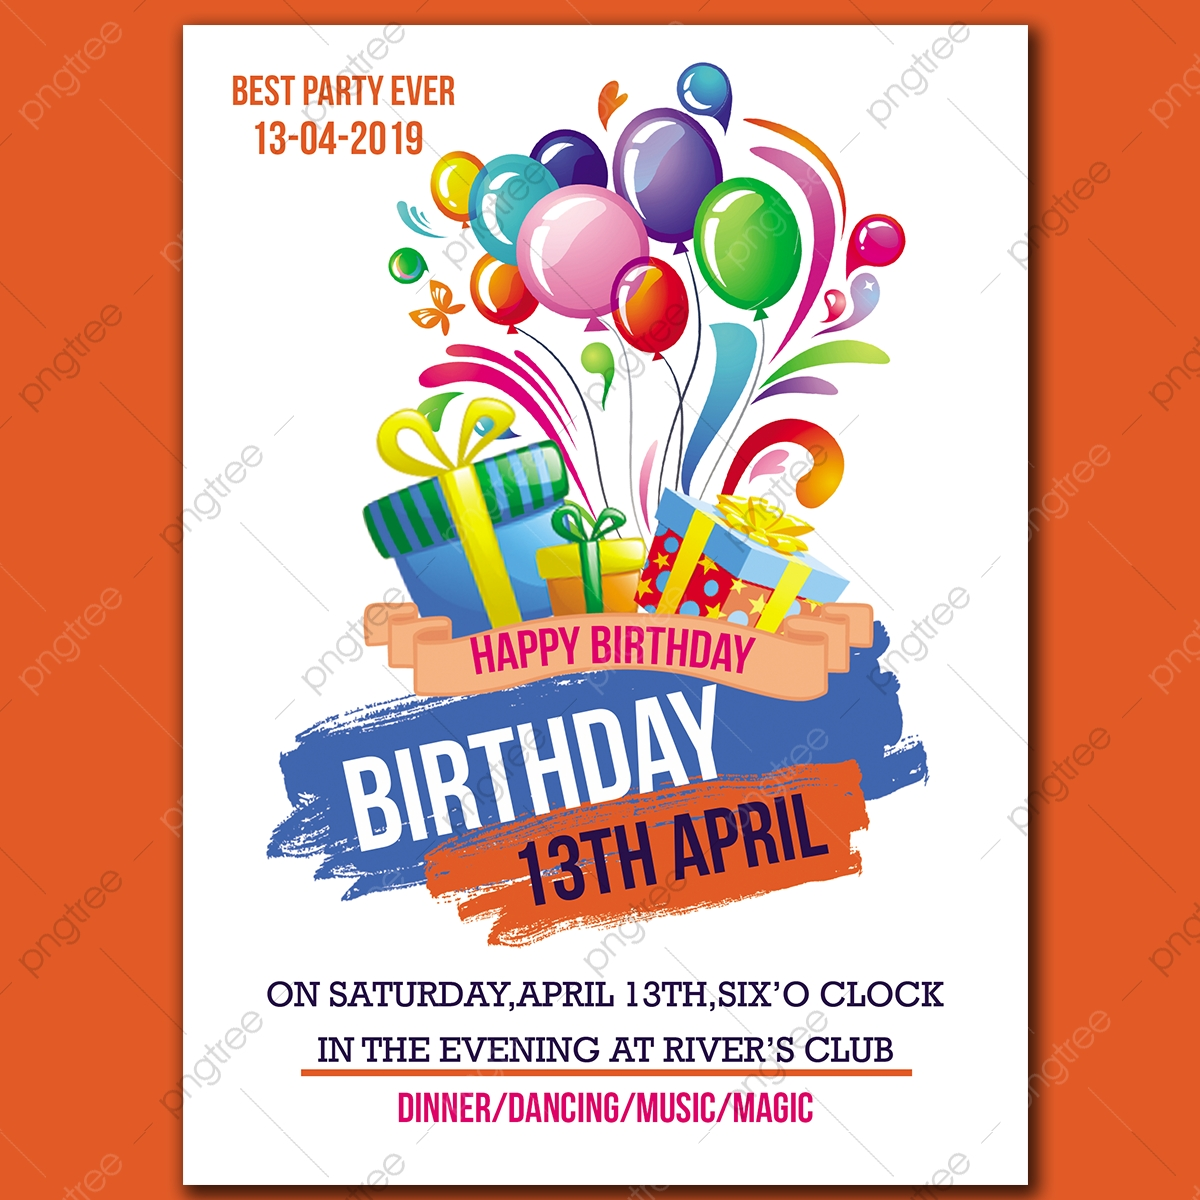 Birthday Invitation Card Template for Free Download on Pngtree